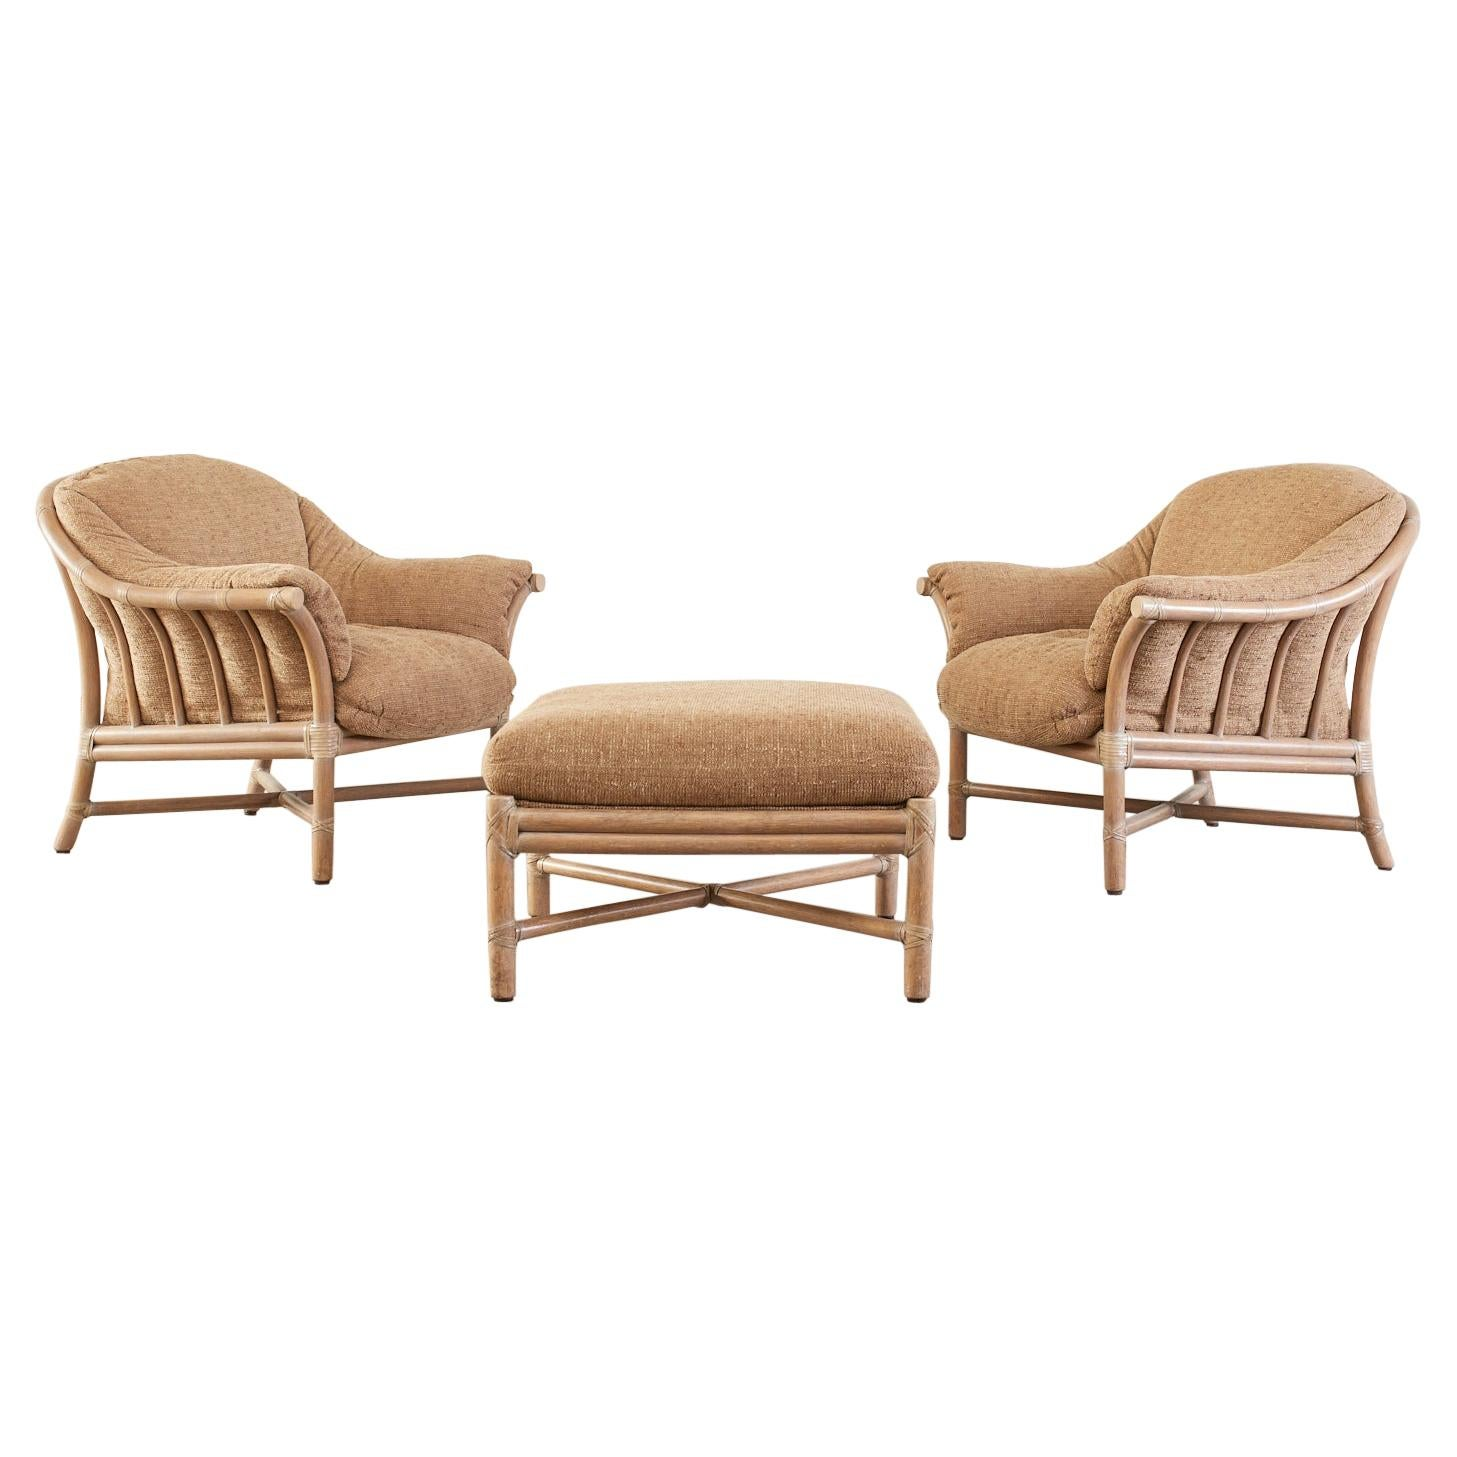 Pair of McGuire Oversized Cerused Rattan Lounge Chairs & Ottoman